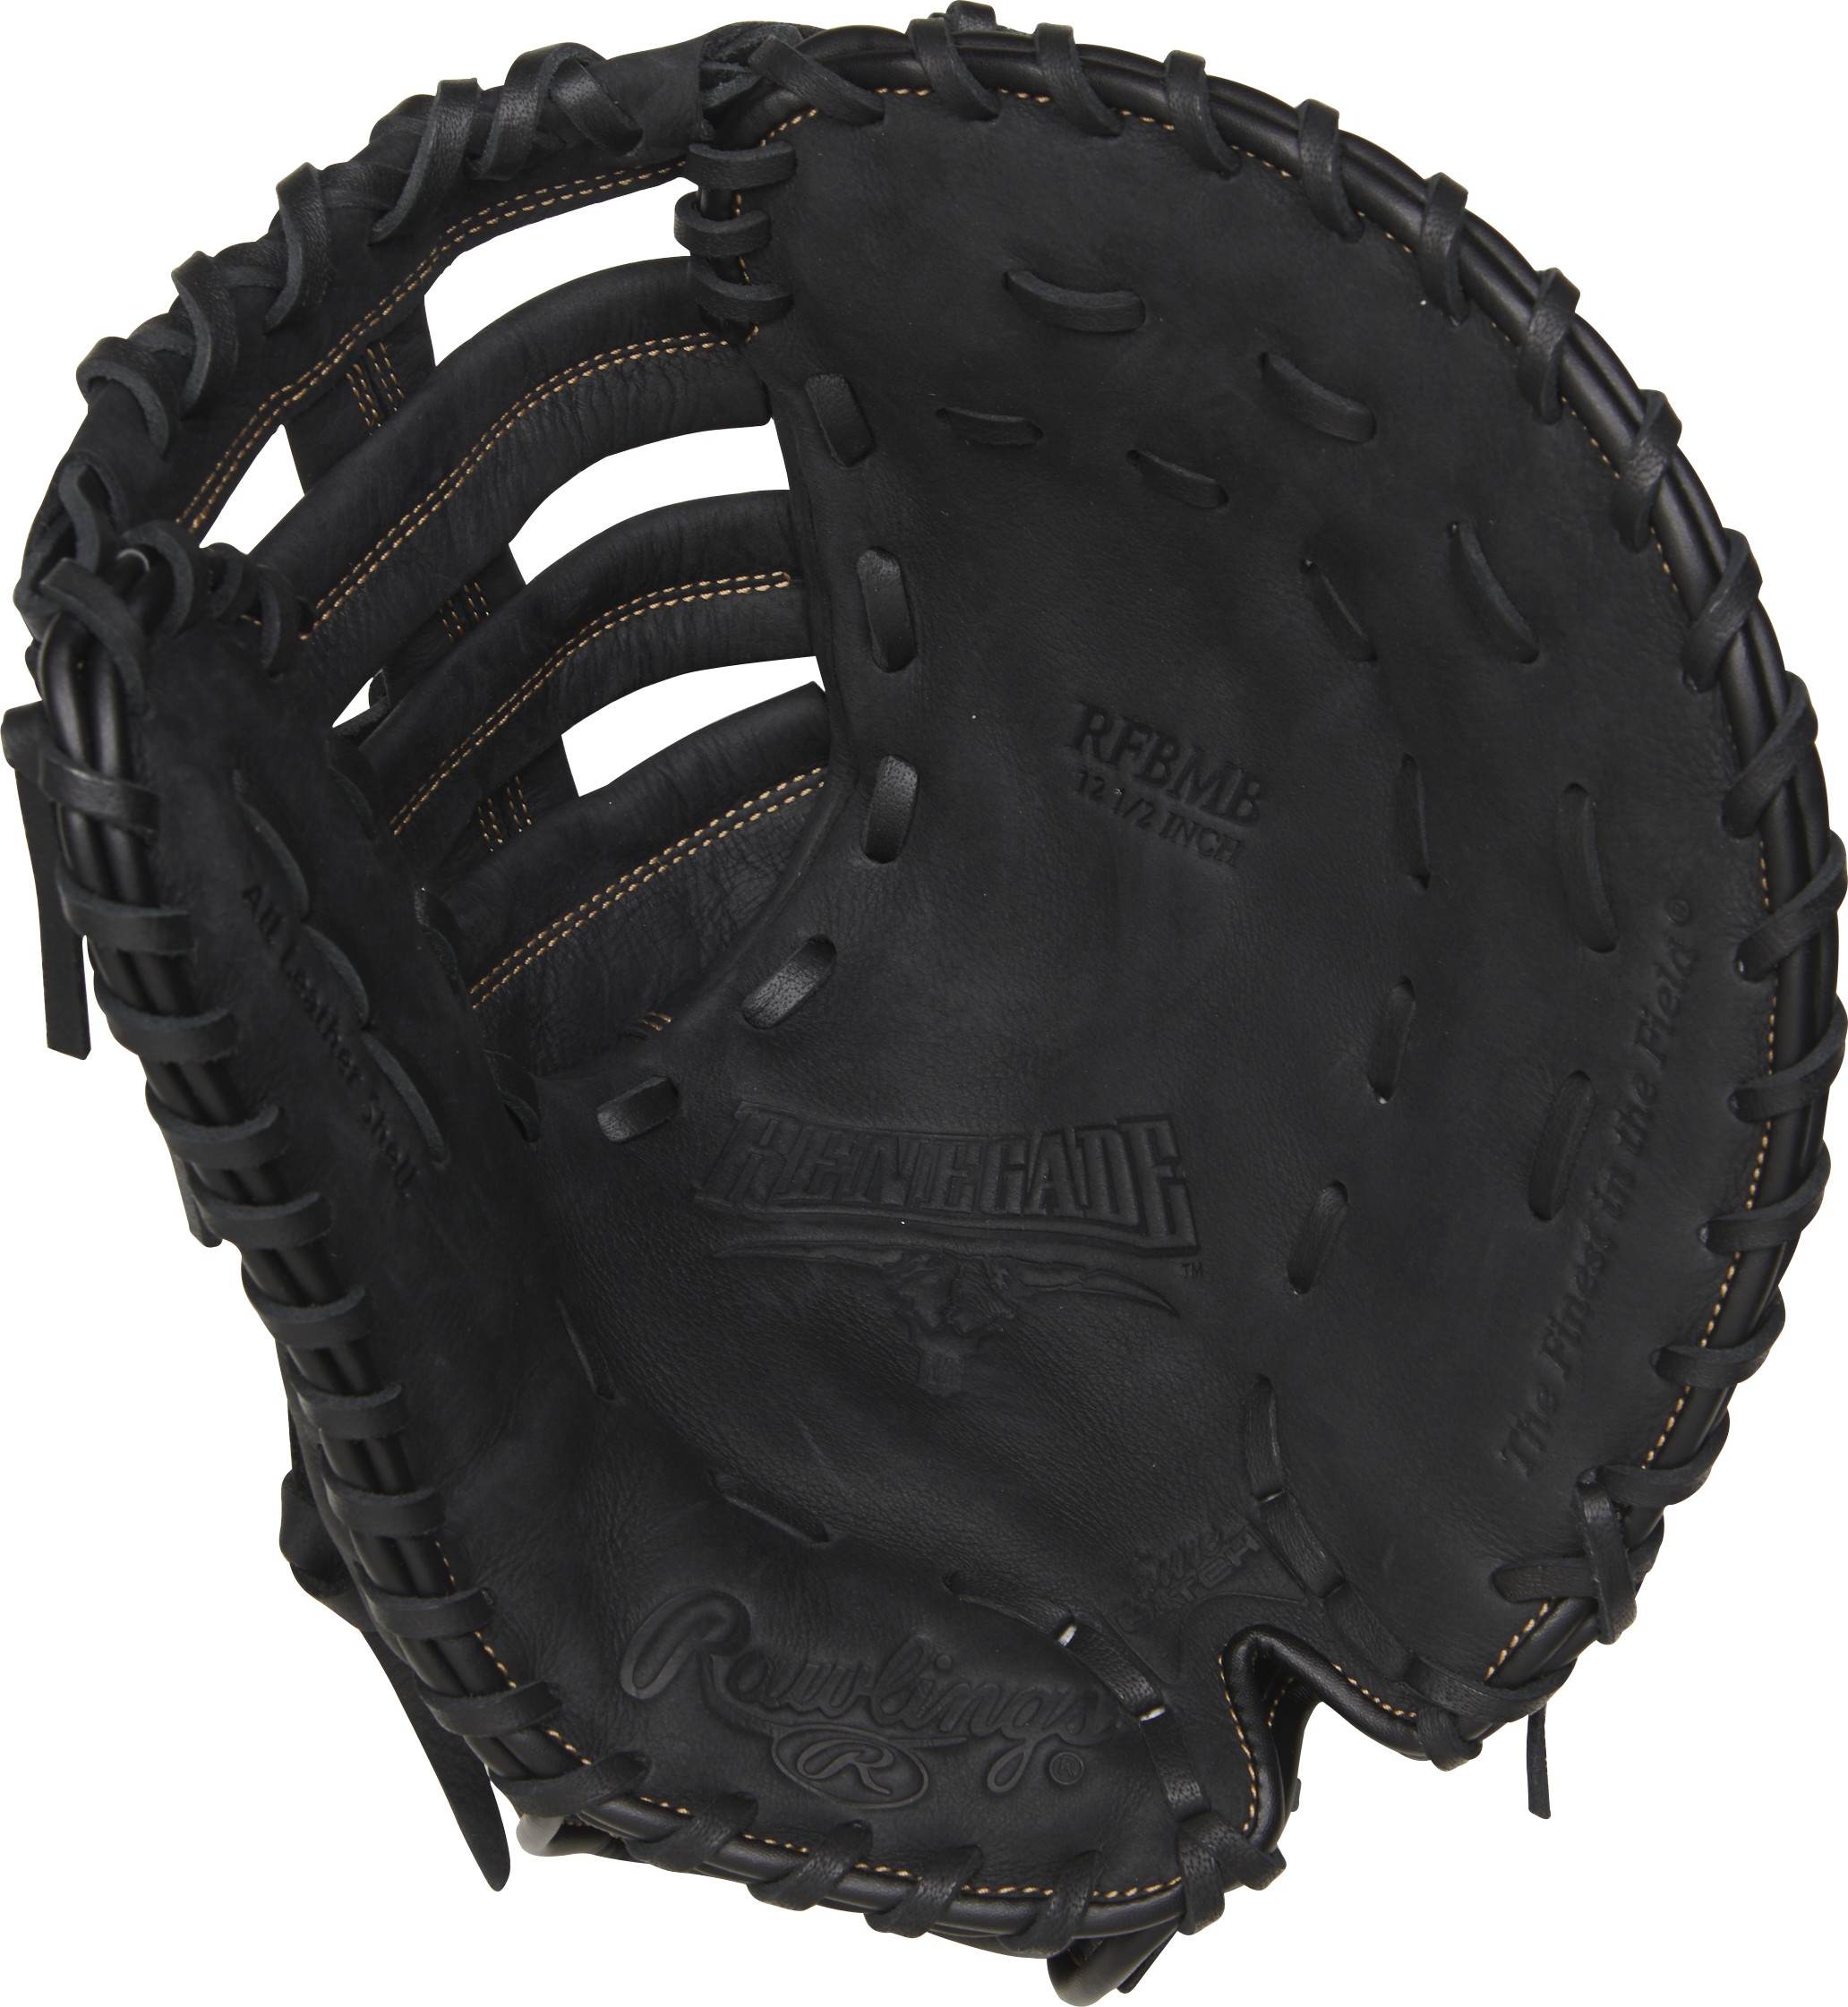 http://www.bestbatdeals.com/images/gloves/rawlings/RFBMB-1.jpg